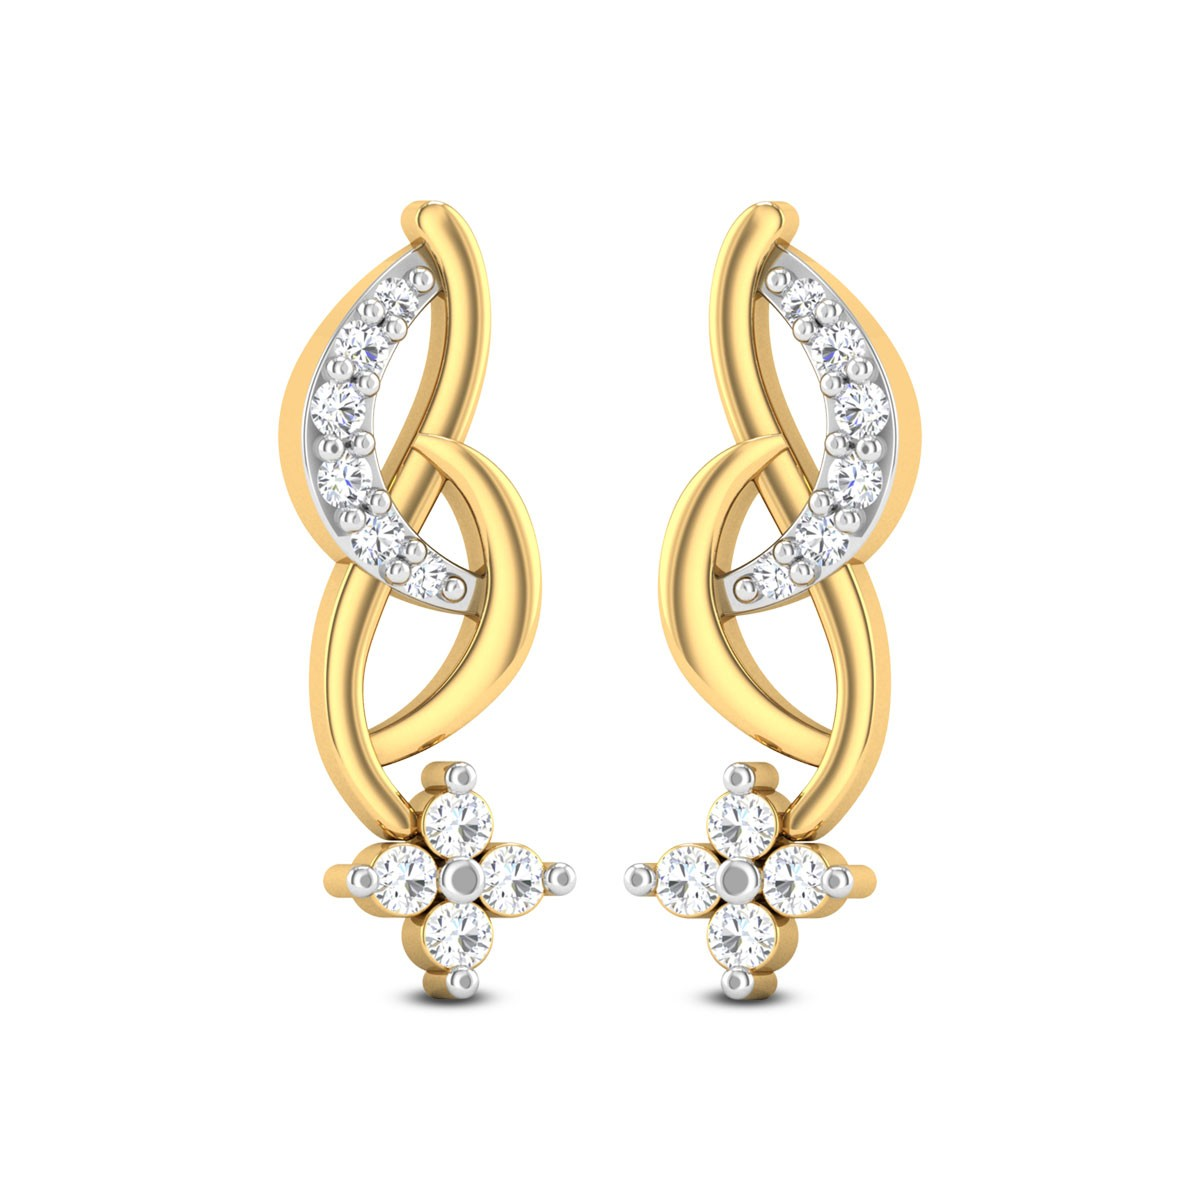 Grecia Floral Diamond Stud Earrings